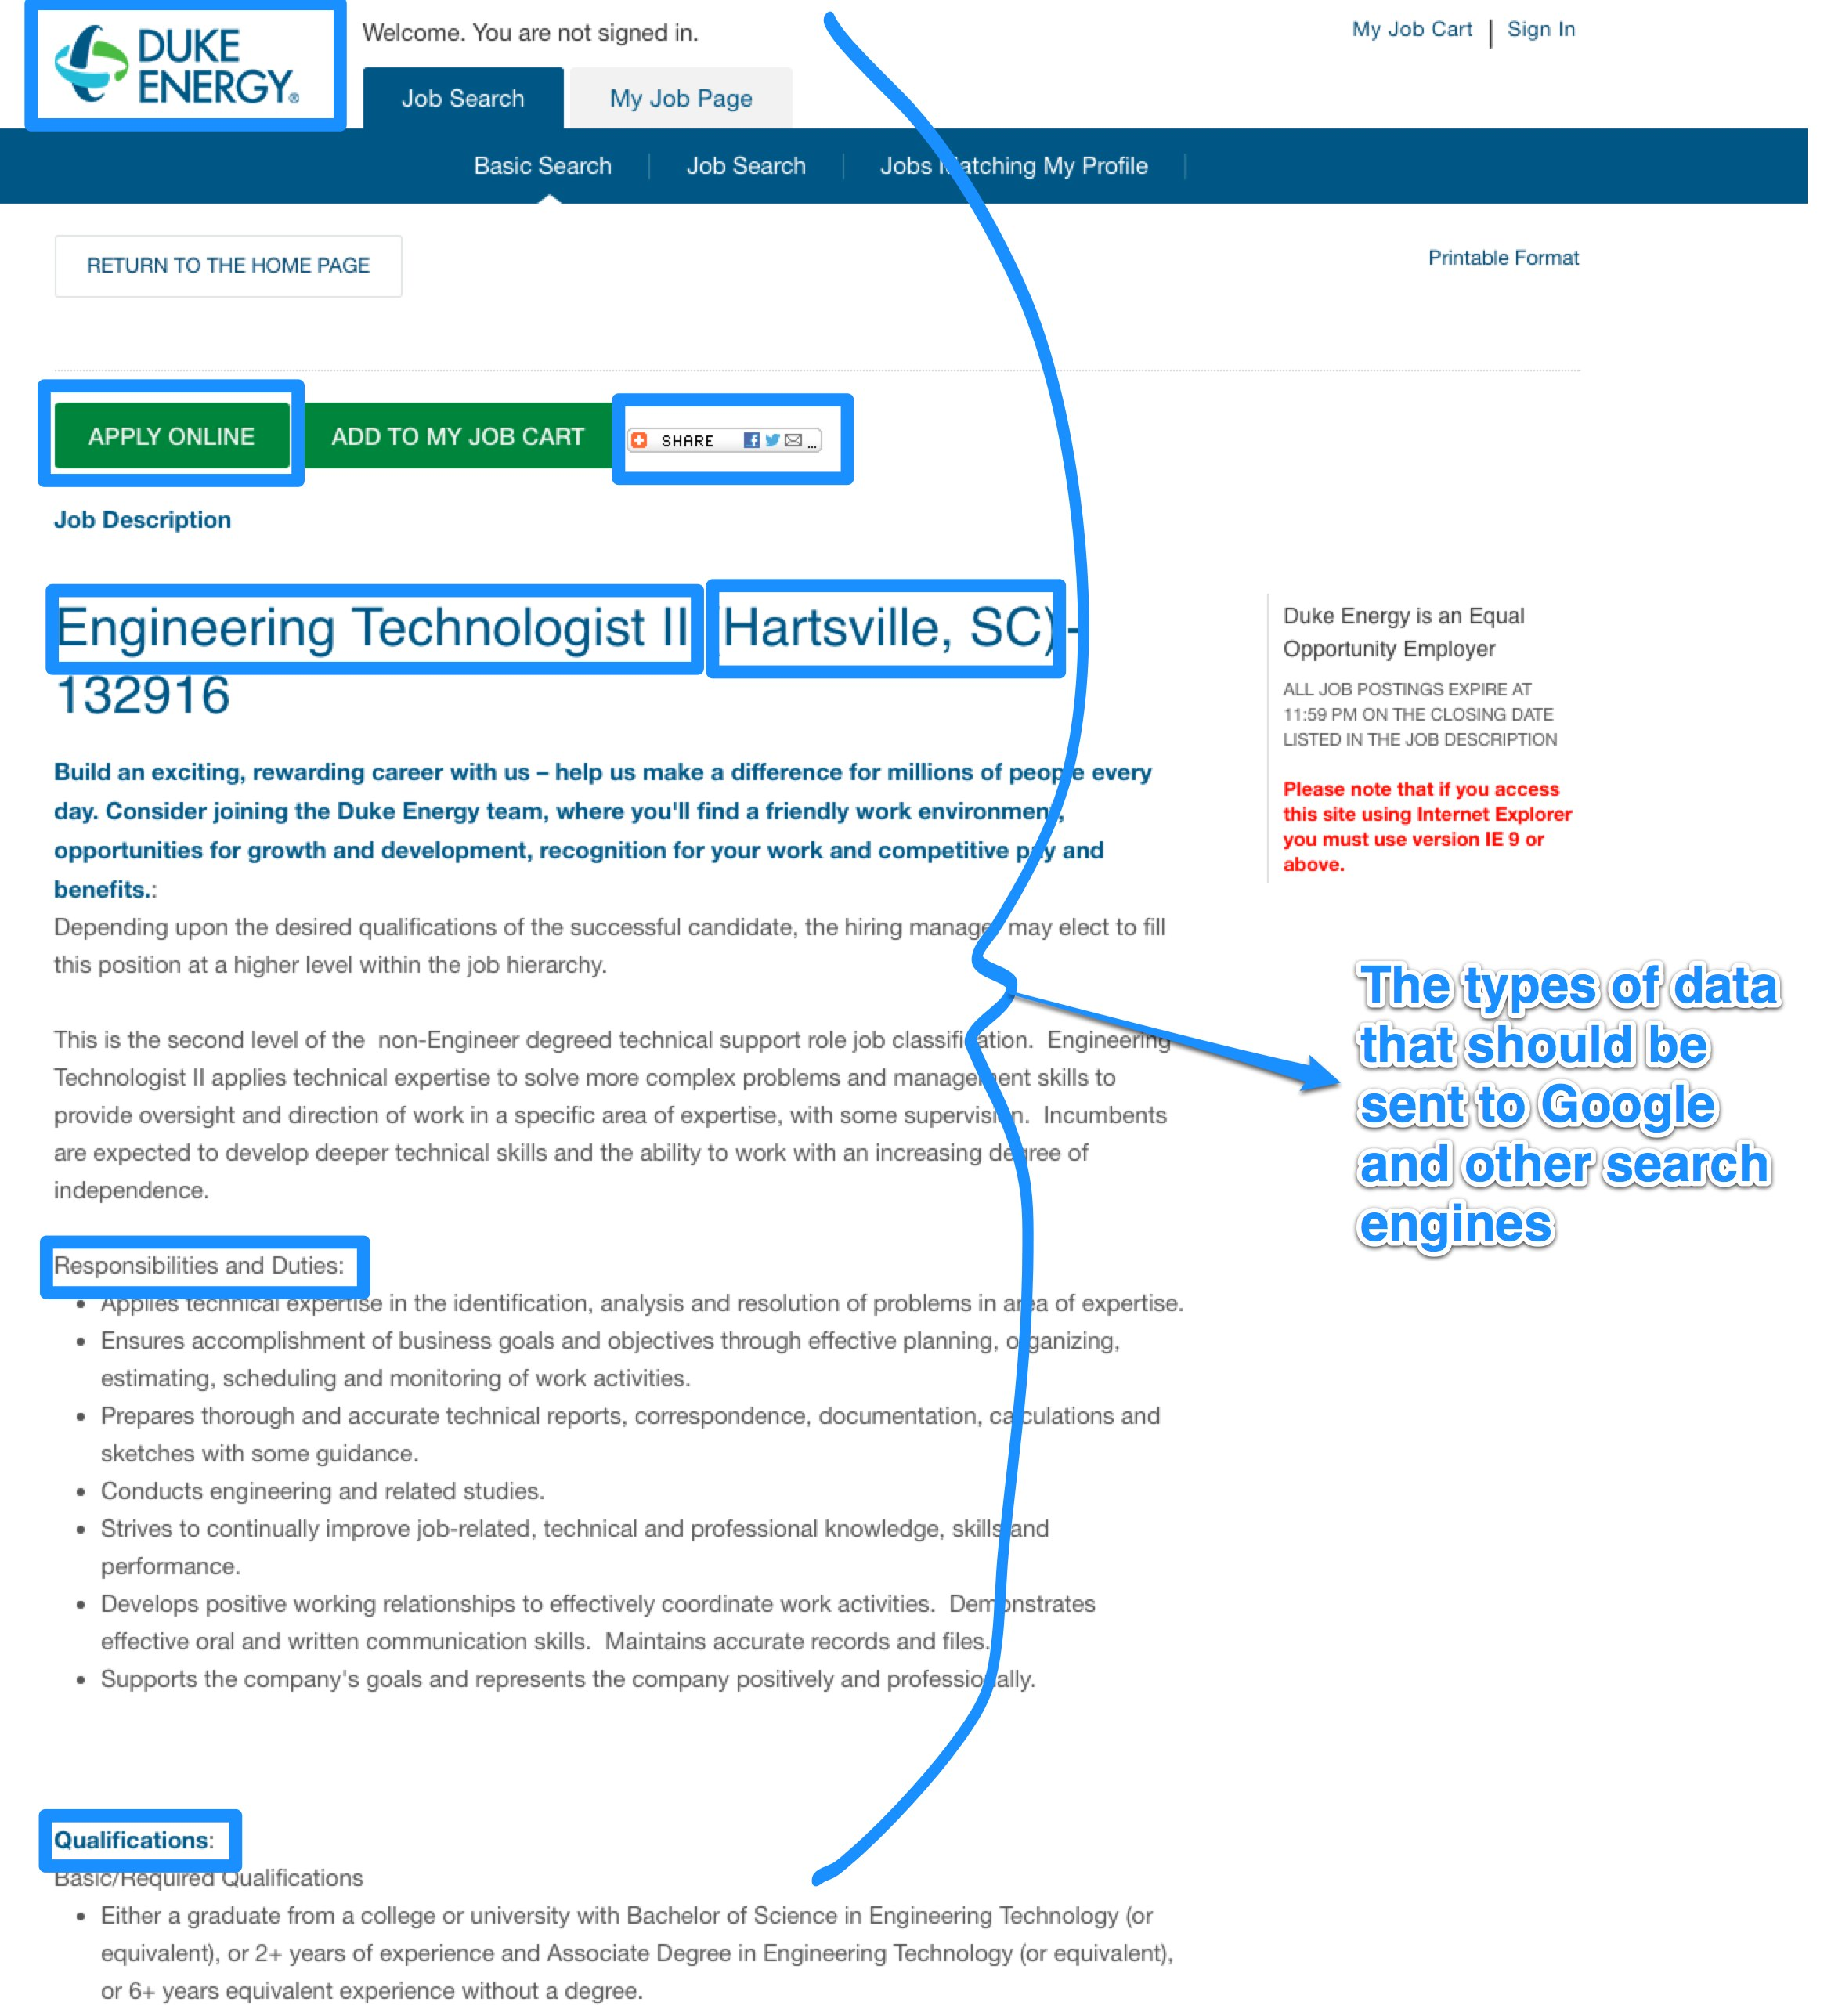 Schema.org for job descriptions examples of properties SEO